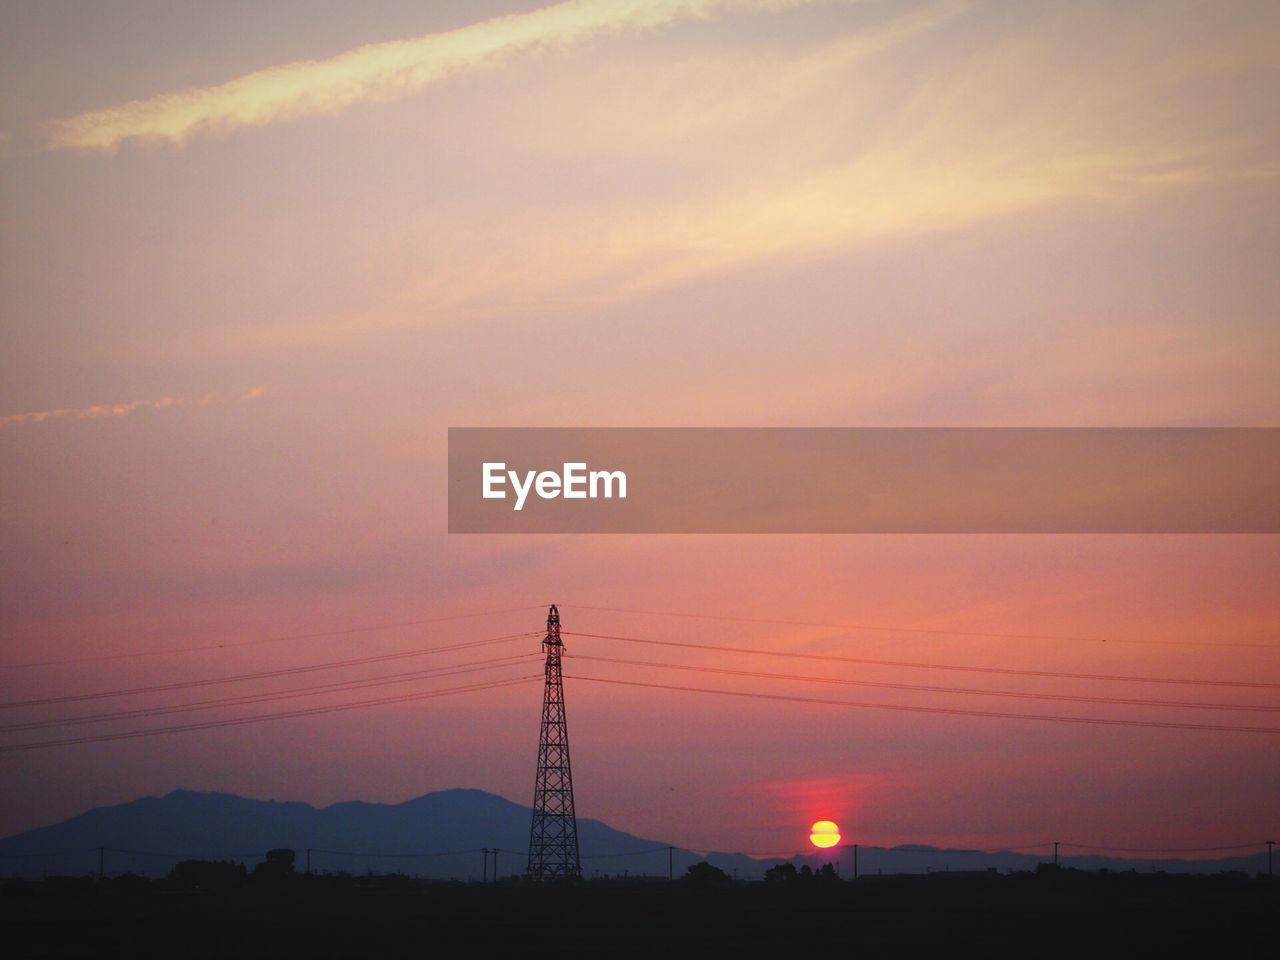 sunset, sky, electricity, electricity pylon, technology, orange color, power line, cable, beauty in nature, silhouette, cloud - sky, scenics - nature, power supply, connection, nature, no people, fuel and power generation, tranquil scene, tranquility, outdoors, telephone line, romantic sky, electrical equipment